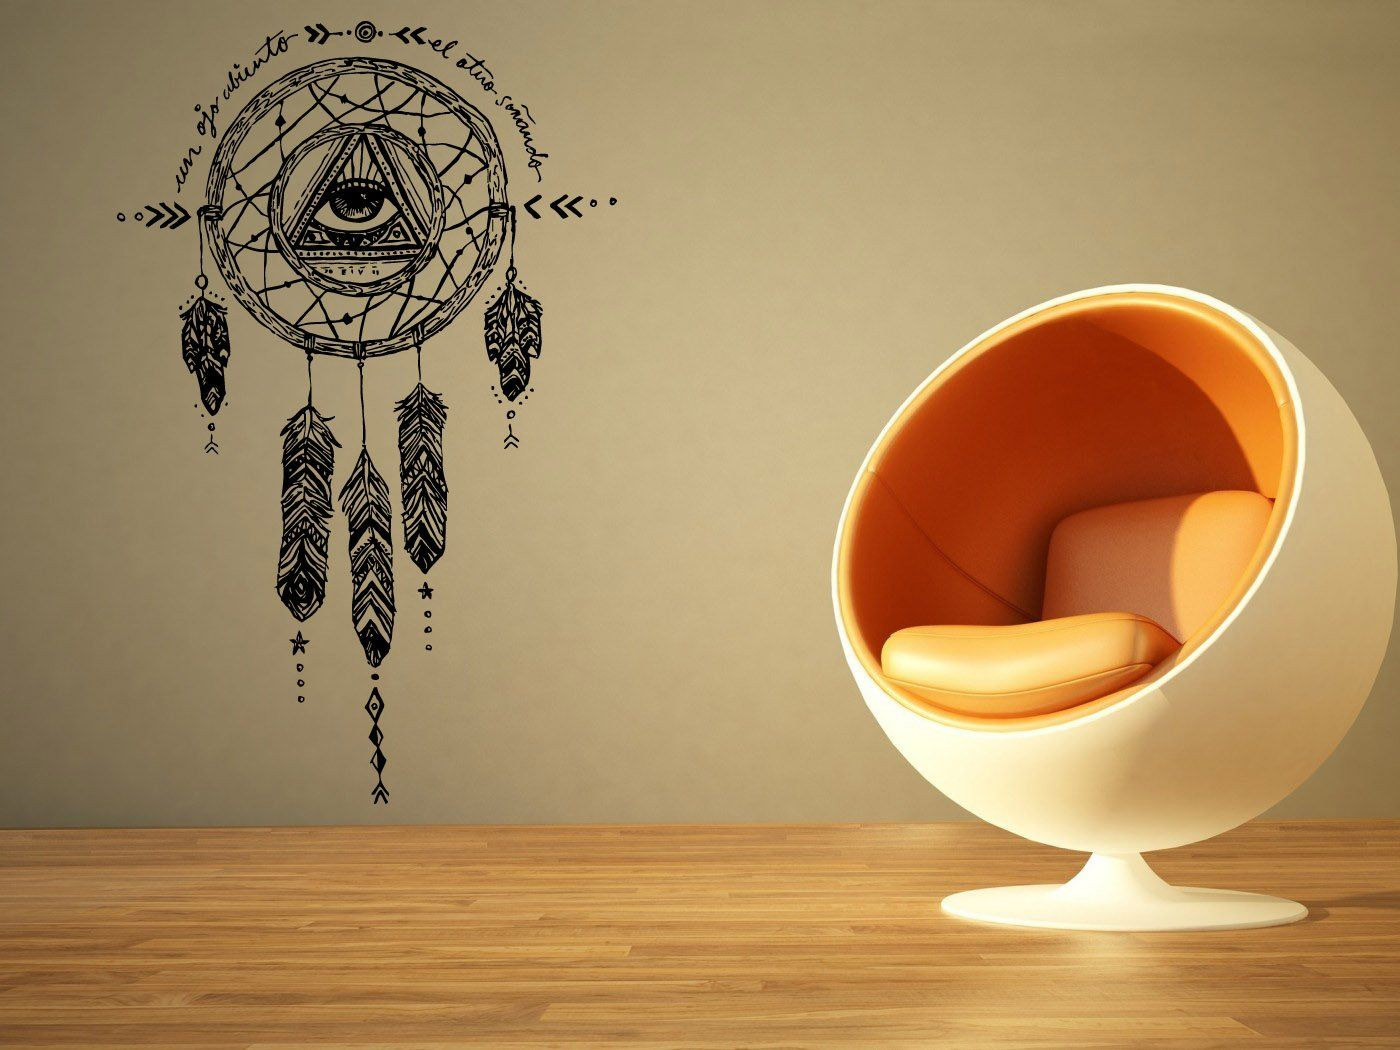 Wall Room Decor Art Vinyl Sticker Mural Decal Shiva Indian God Big ...